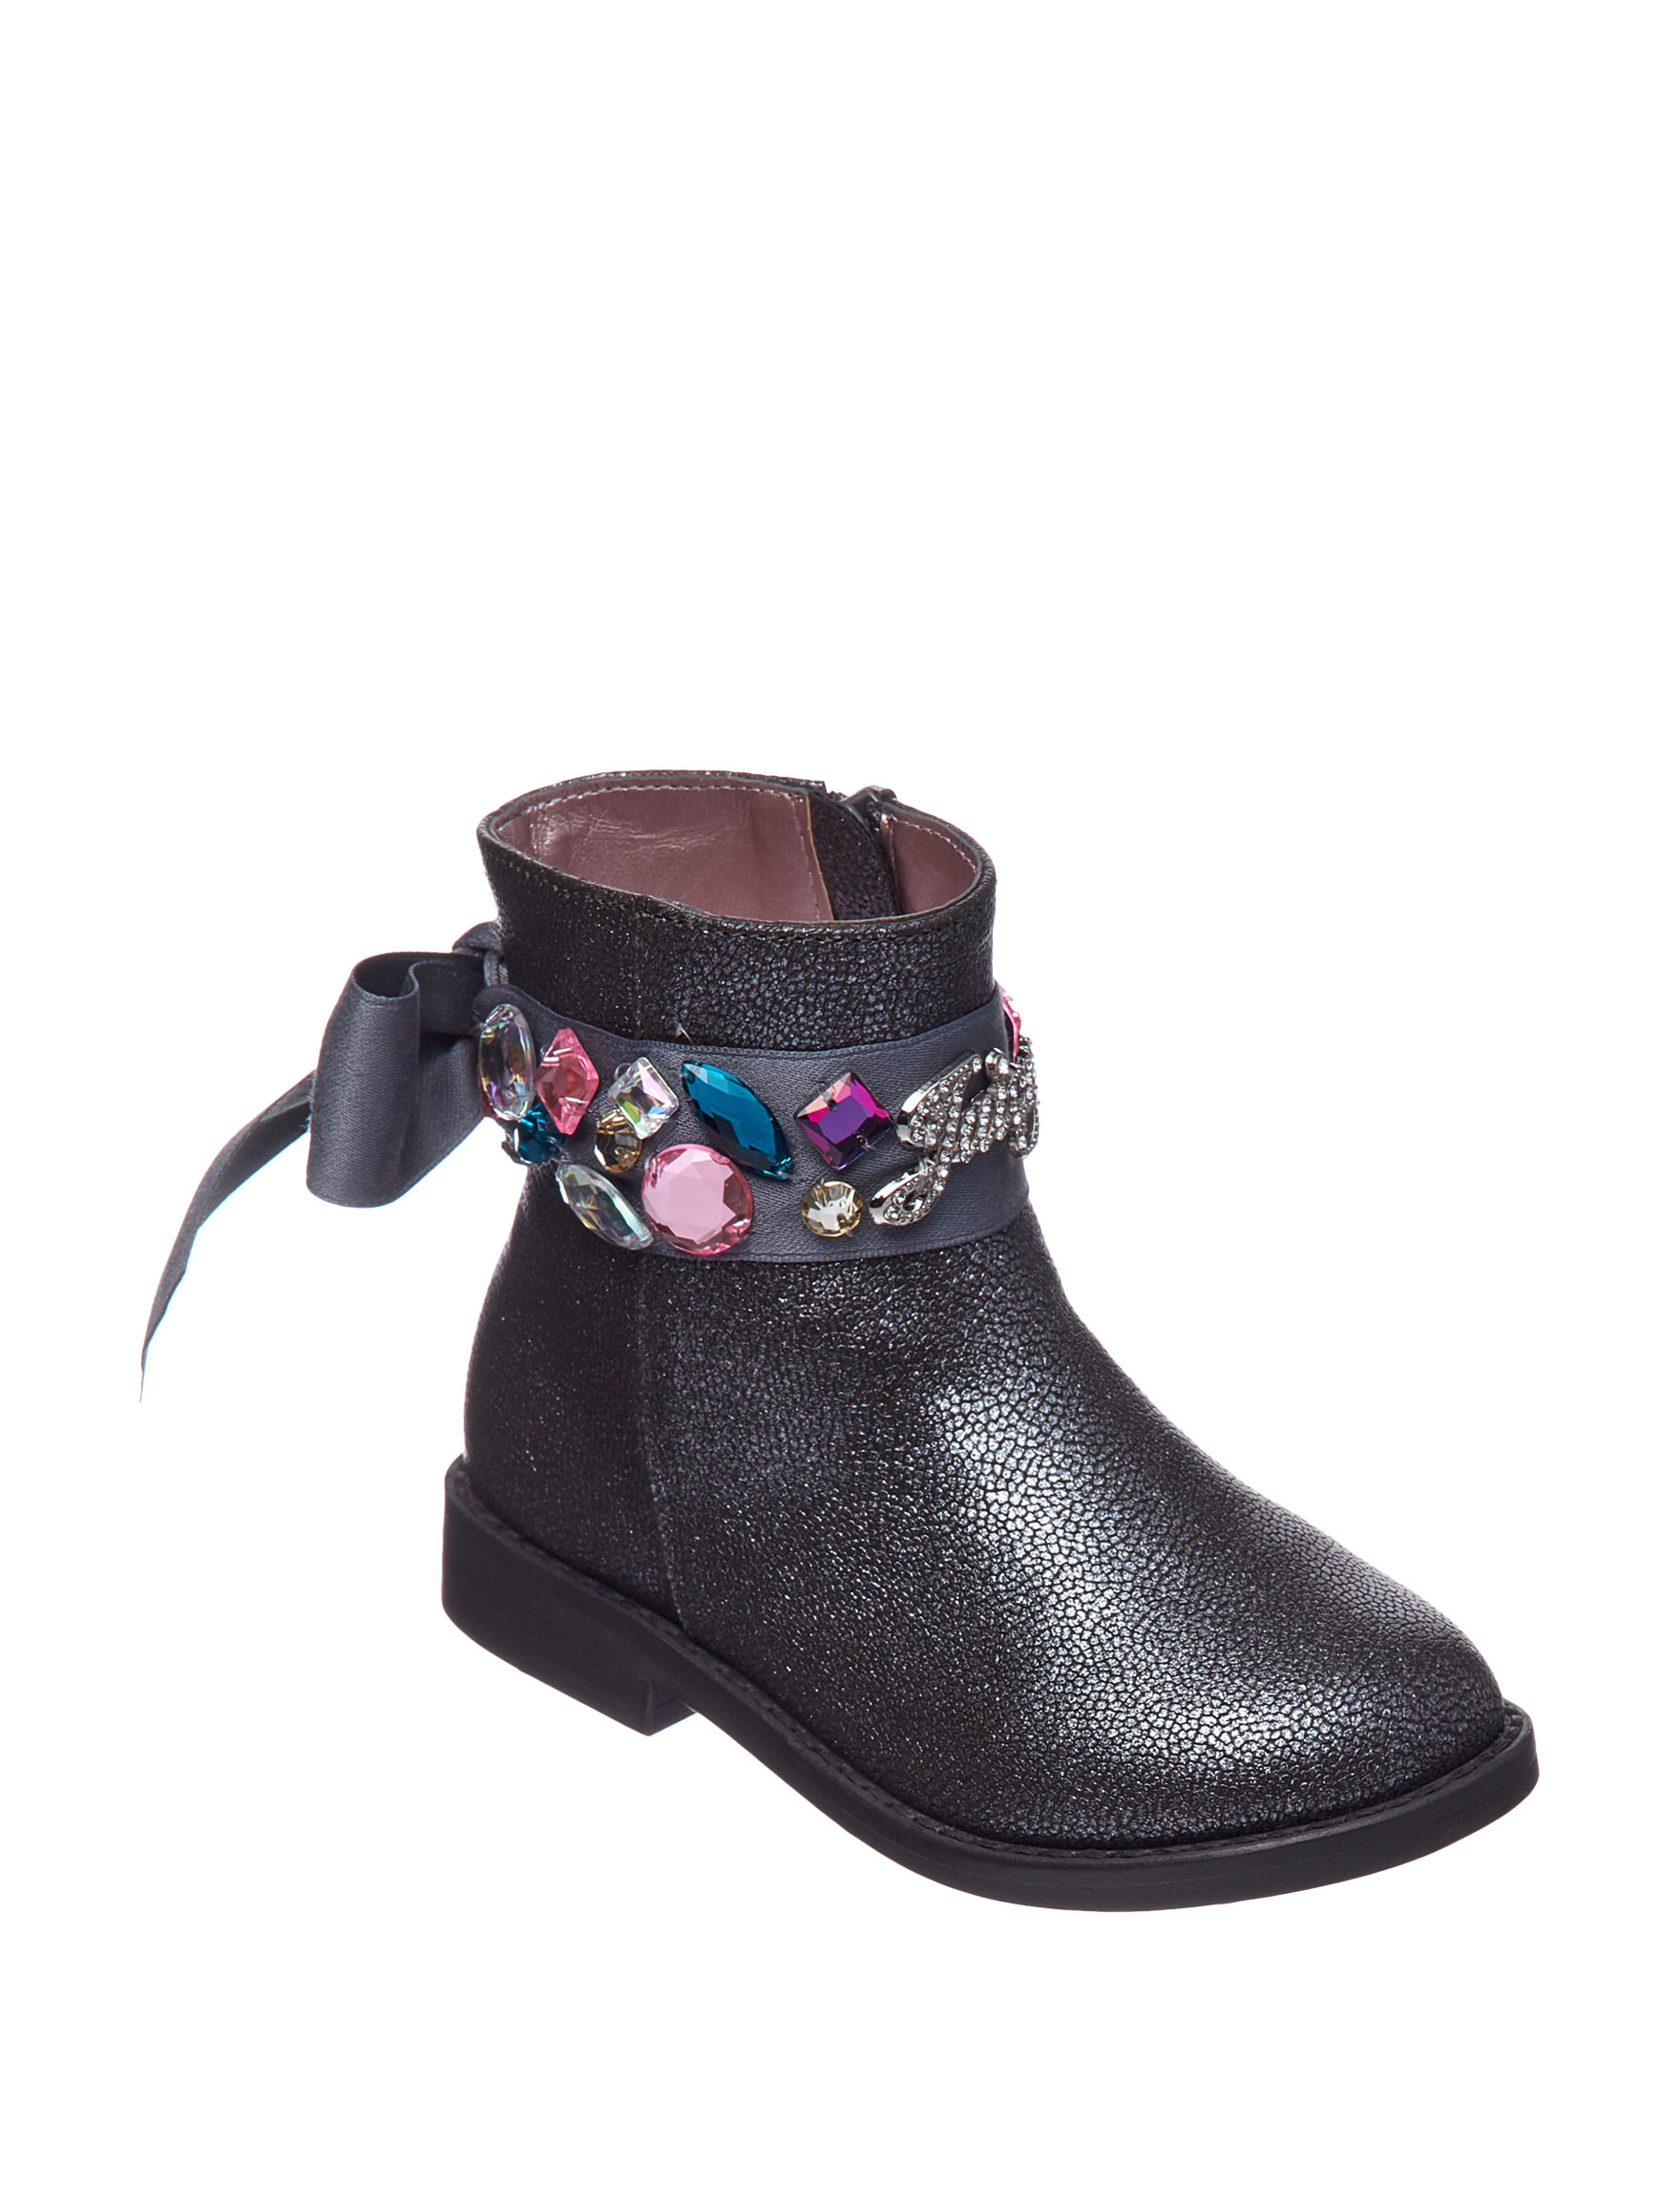 Juicy Couture Charcoal Ankle Boots & Booties